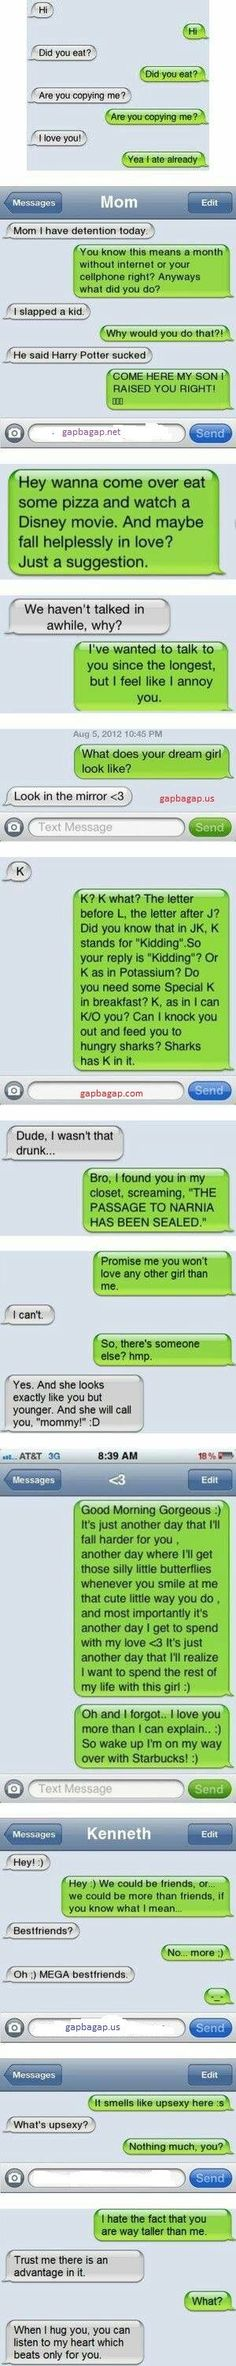 New Funny Quotes For Boyfriend Humor Jokes Text Messages 24 Ideas Funny Quotes, Funny Memes, Text Quotes, Hilarious Texts, Funny Drunk Texts, Funny Text Fails, Epic Texts, Funny Tweets, Qoutes